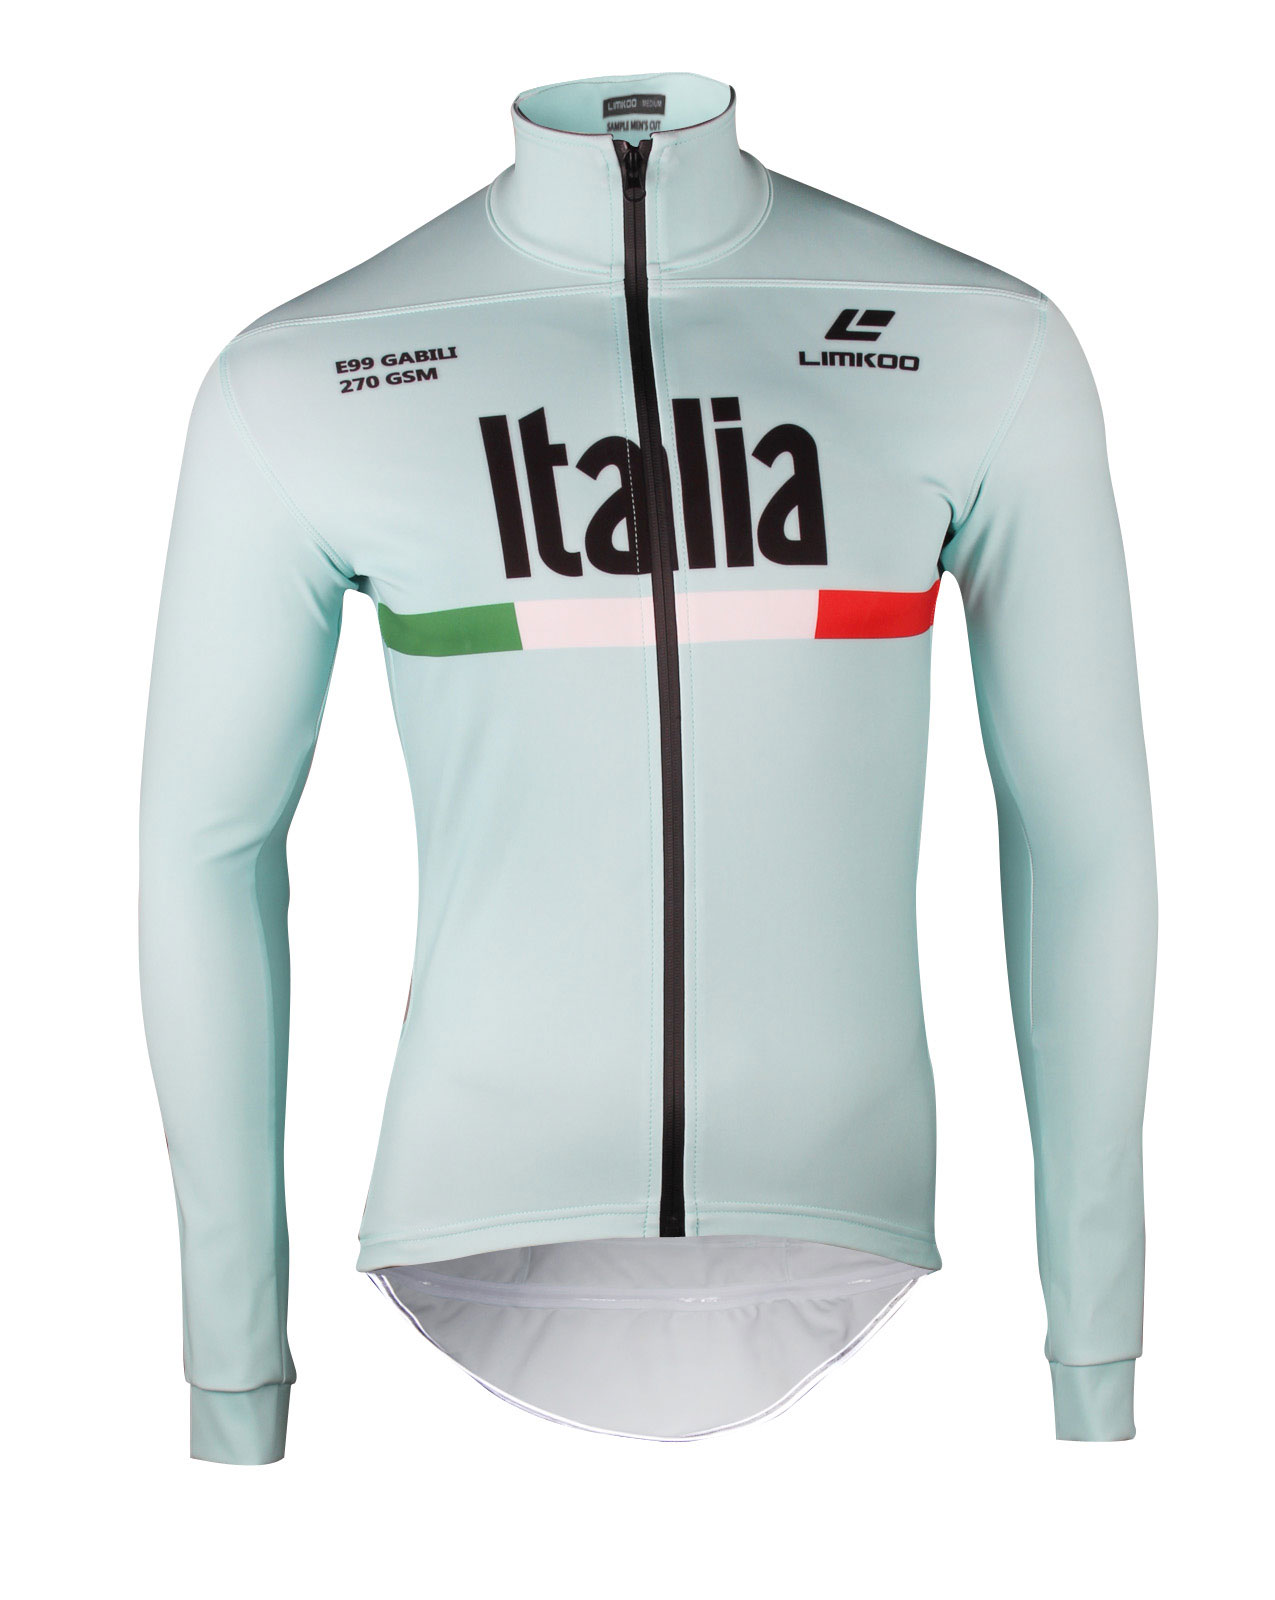 Italian GABILI Cycling Jacket